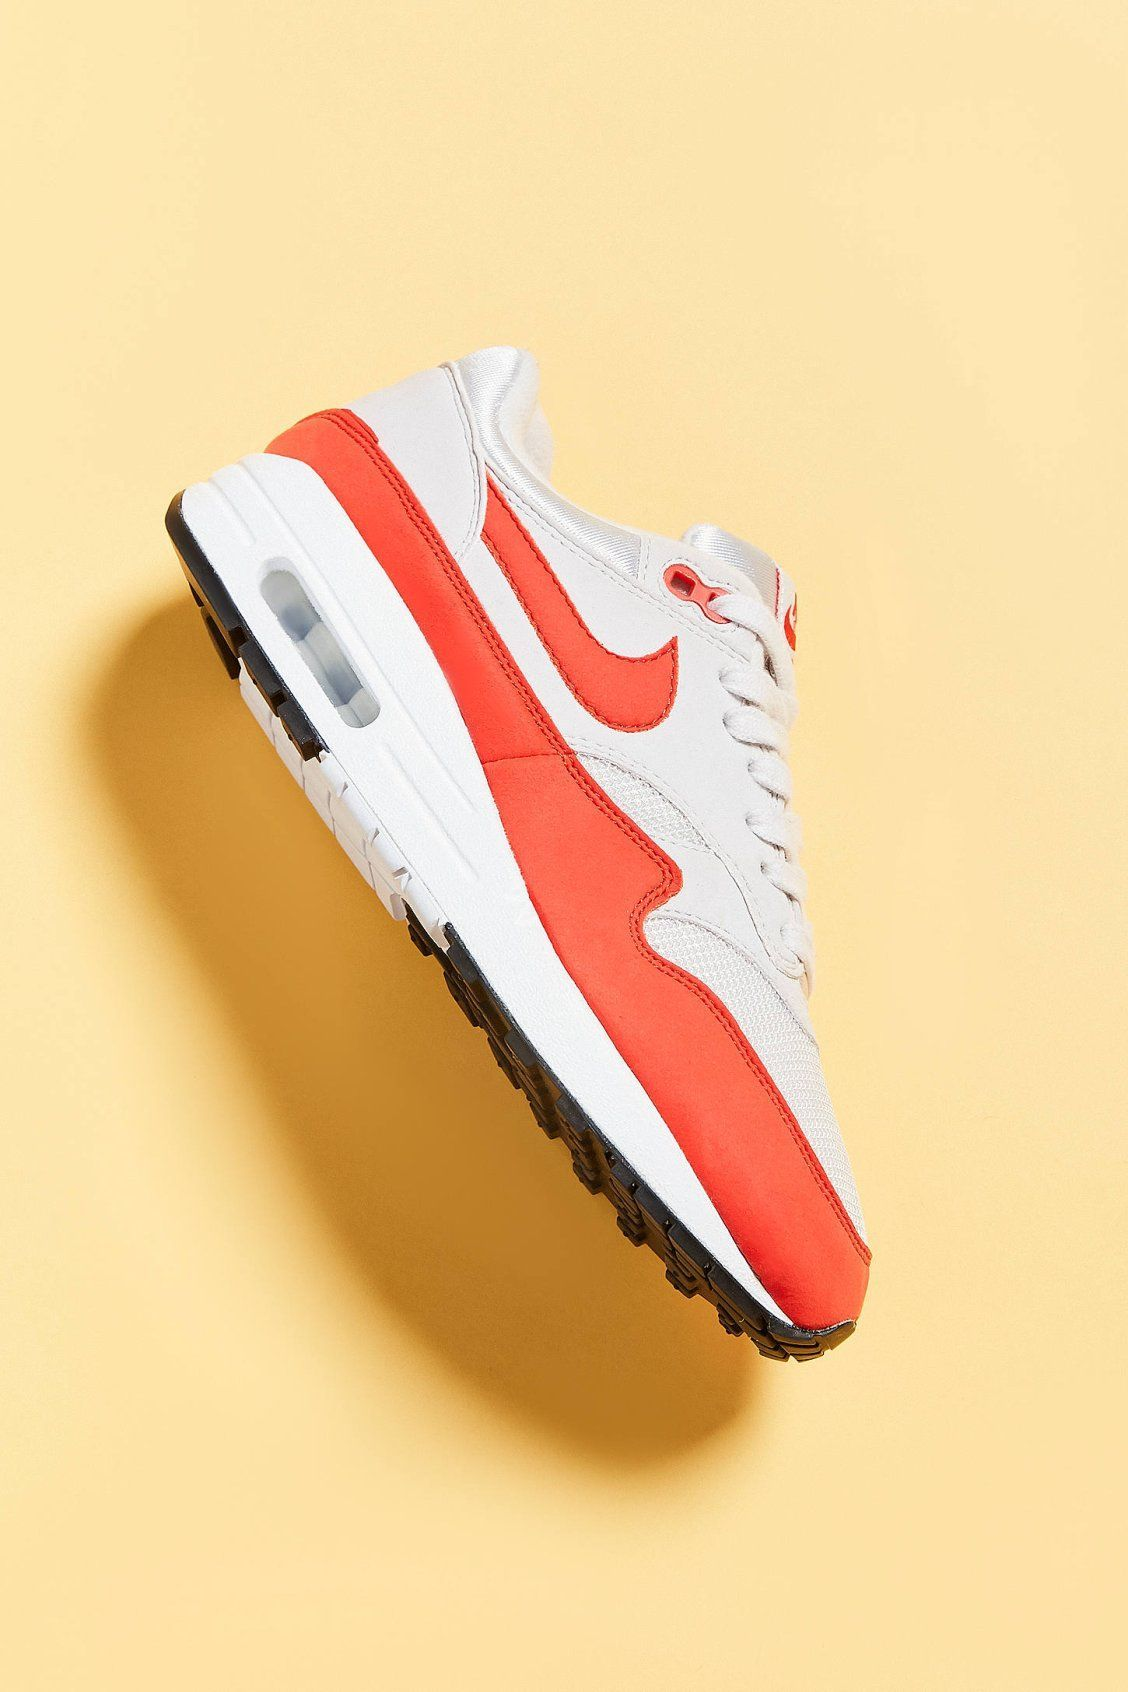 sale retailer 4557c 29900 Nike Air Max 1 Sneaker   Urban Outfitters  Sneakers